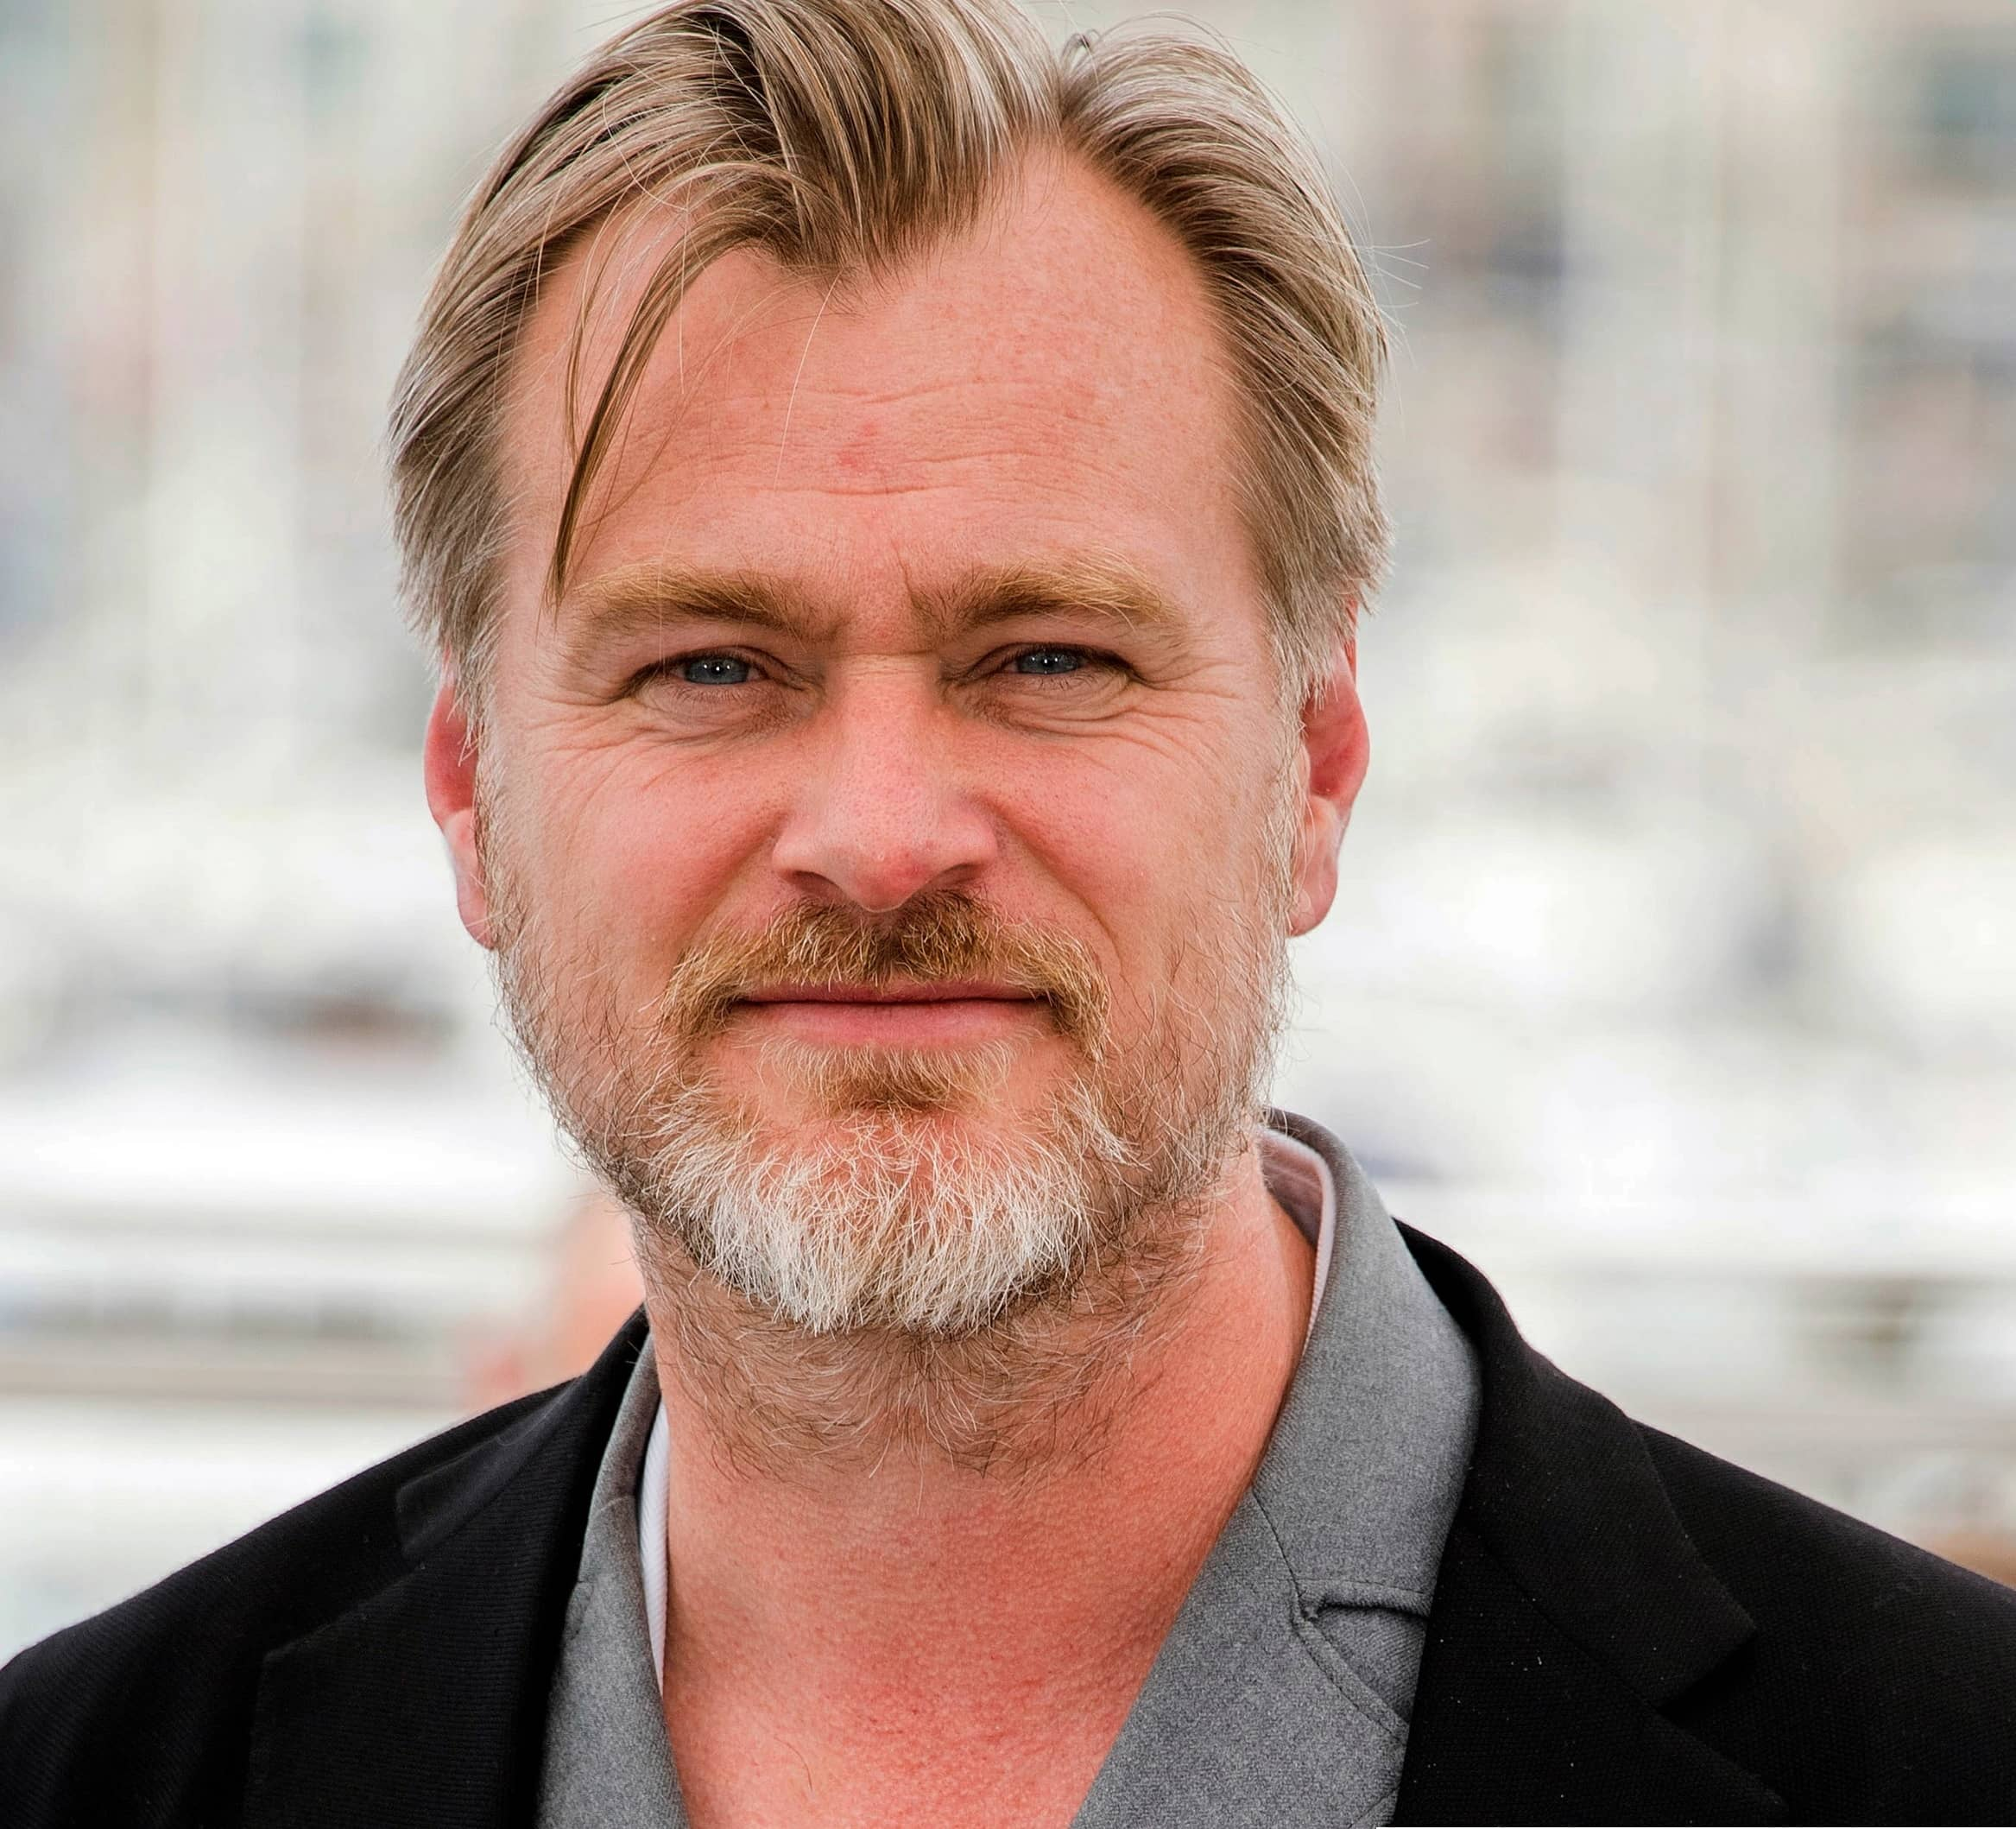 Christopher Nolan's 'Tenet' delayed indefinitely by virus